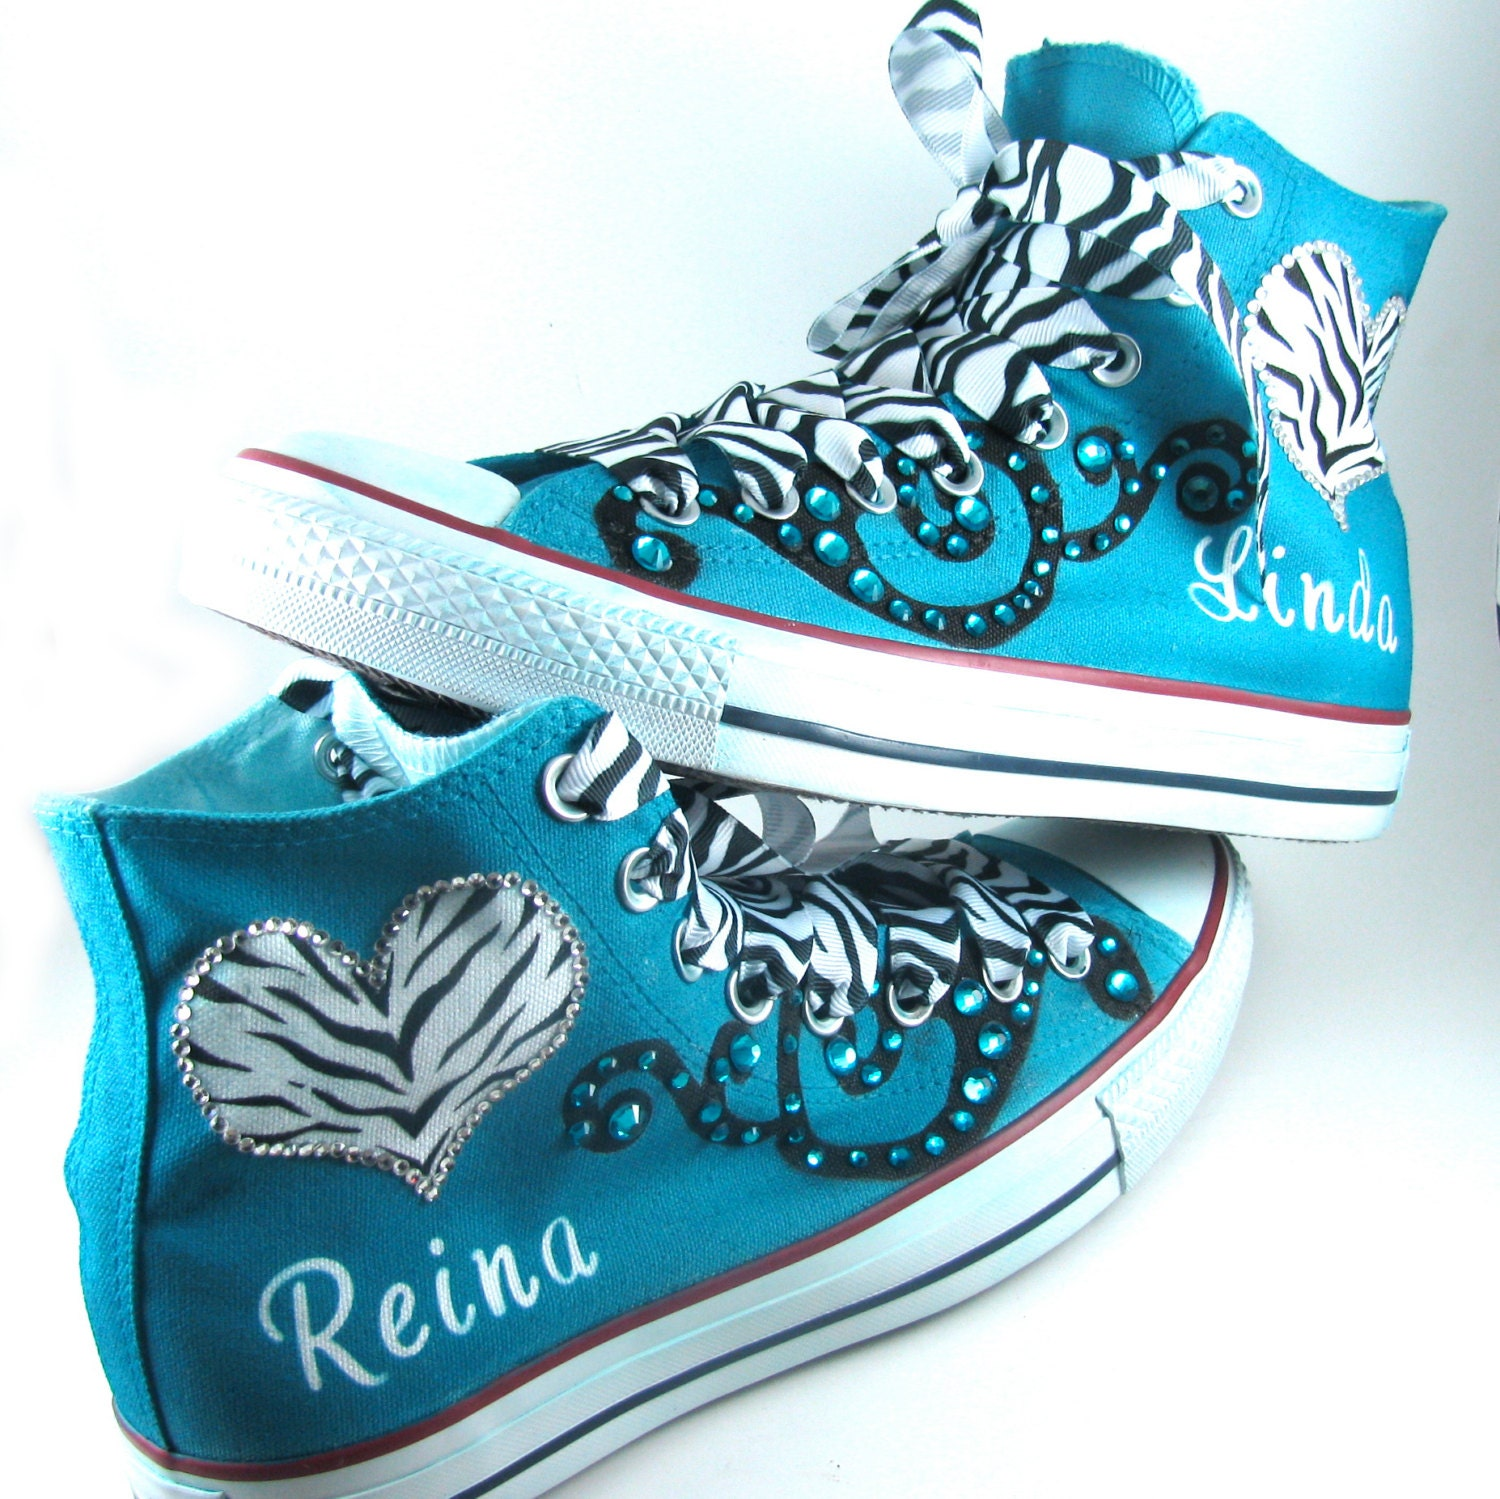 7f45e1e02722 Custom Airbrushed Converse Sneakers - Cartoons Logos Icons Quinceanera  Shoes Converse